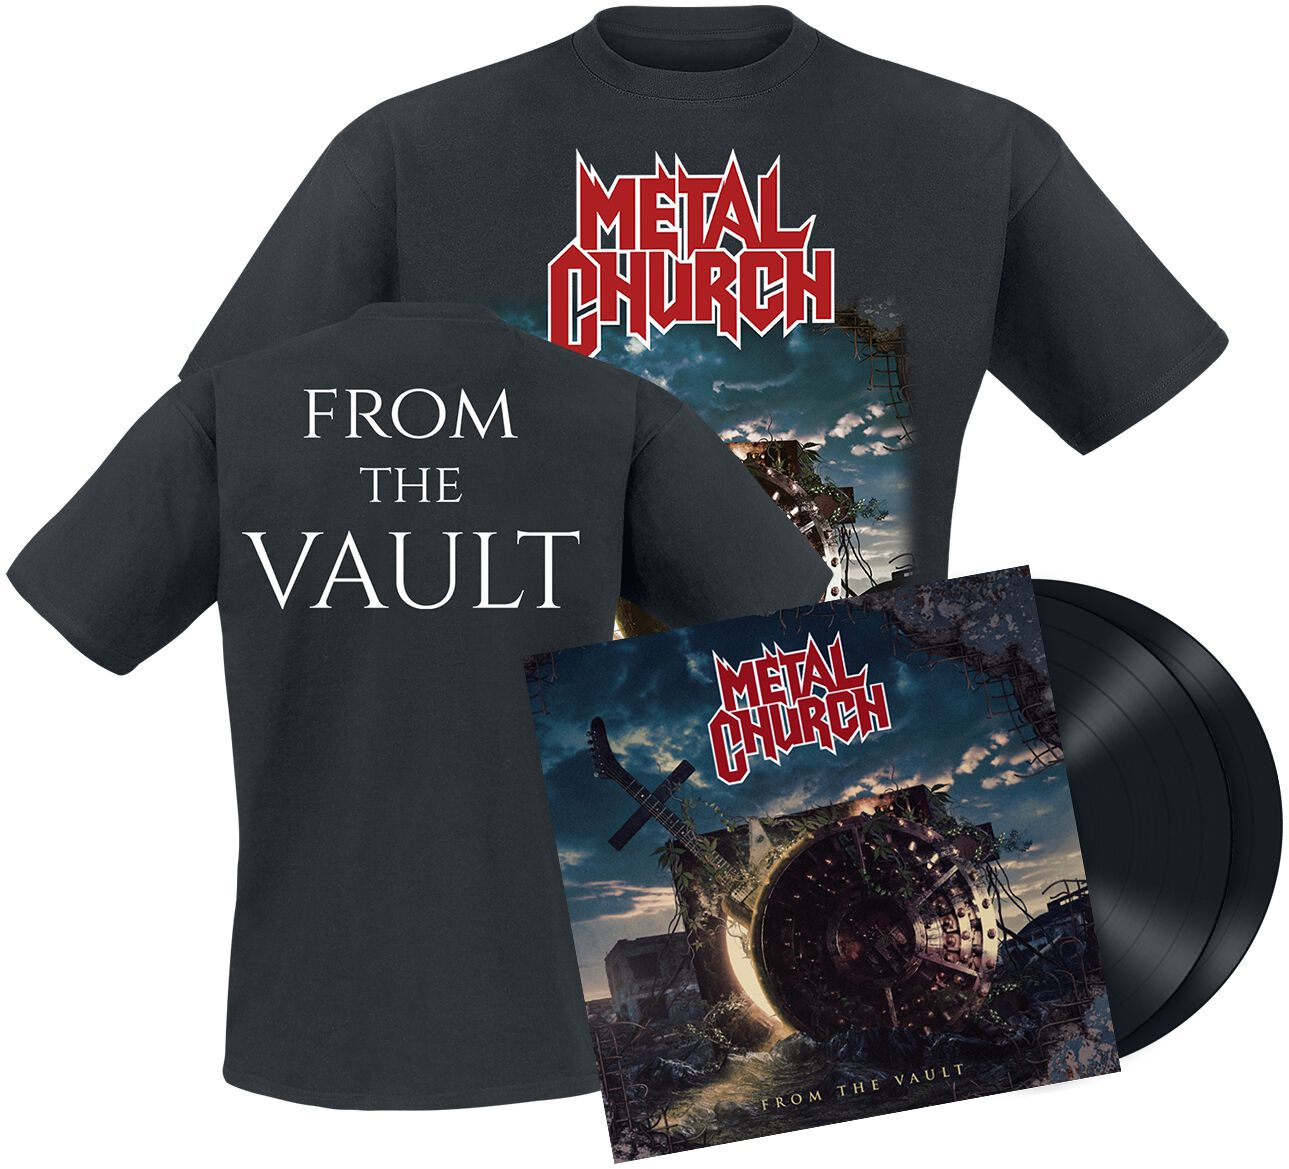 Image of Metal Church From the vault 2-LP & T-Shirt Standard